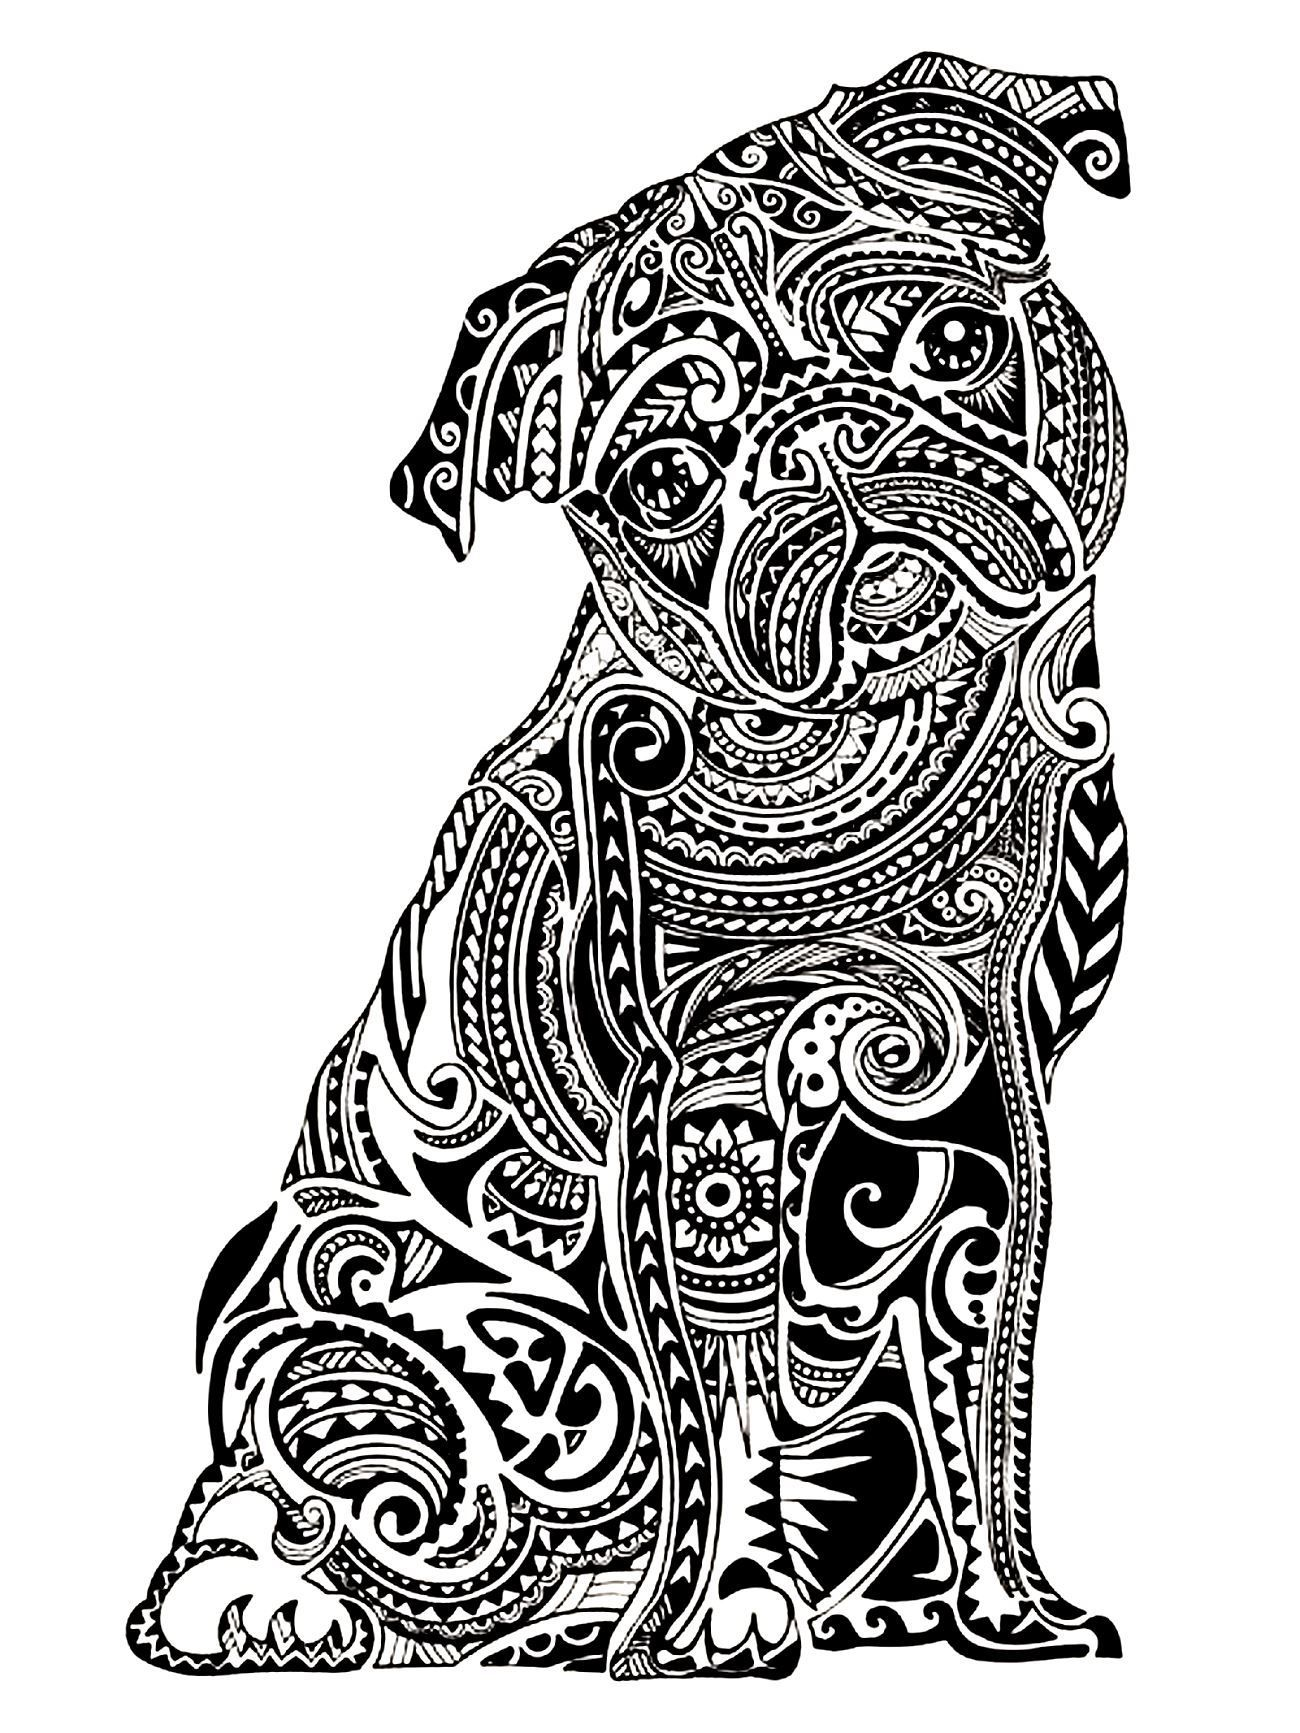 zentangle pug coloring page for adults  Adult Coloring Pages